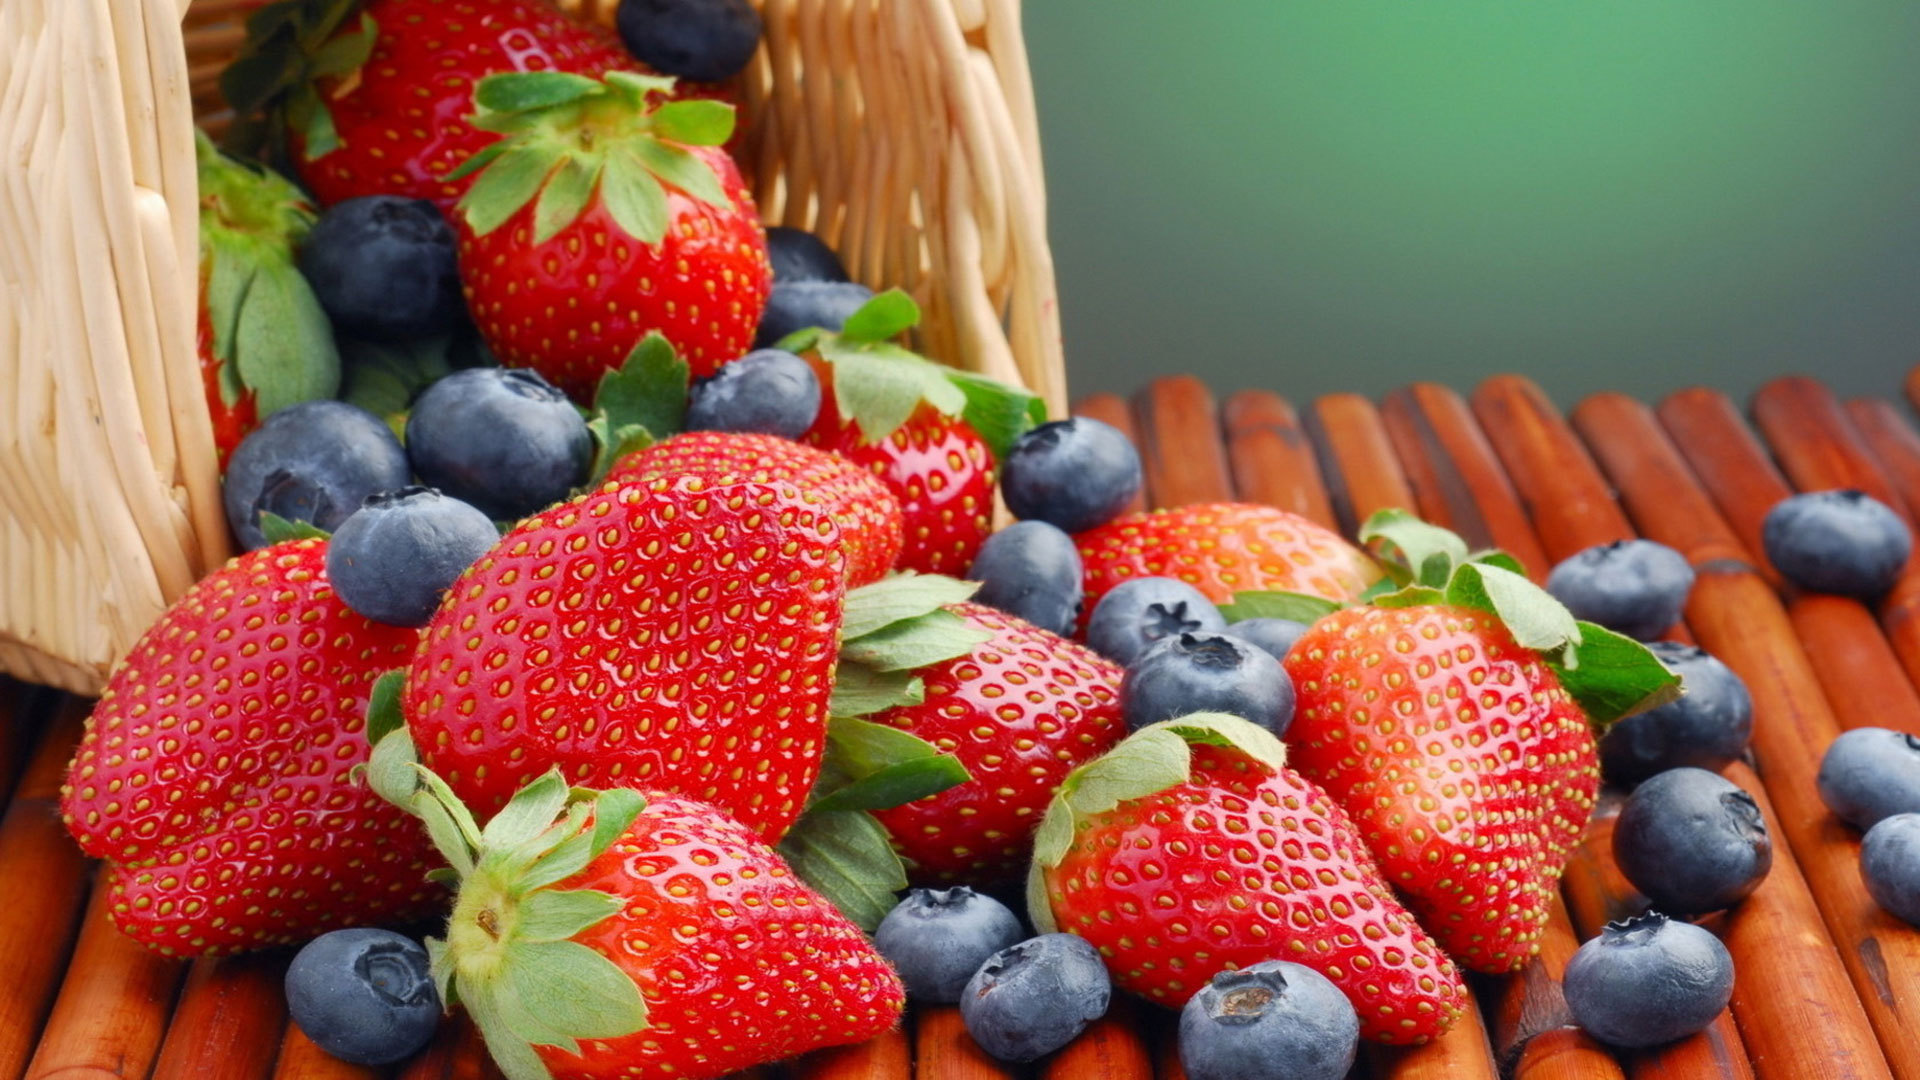 15458 download wallpaper Fruits, Food, Strawberry, Background, Bilberries, Berries screensavers and pictures for free